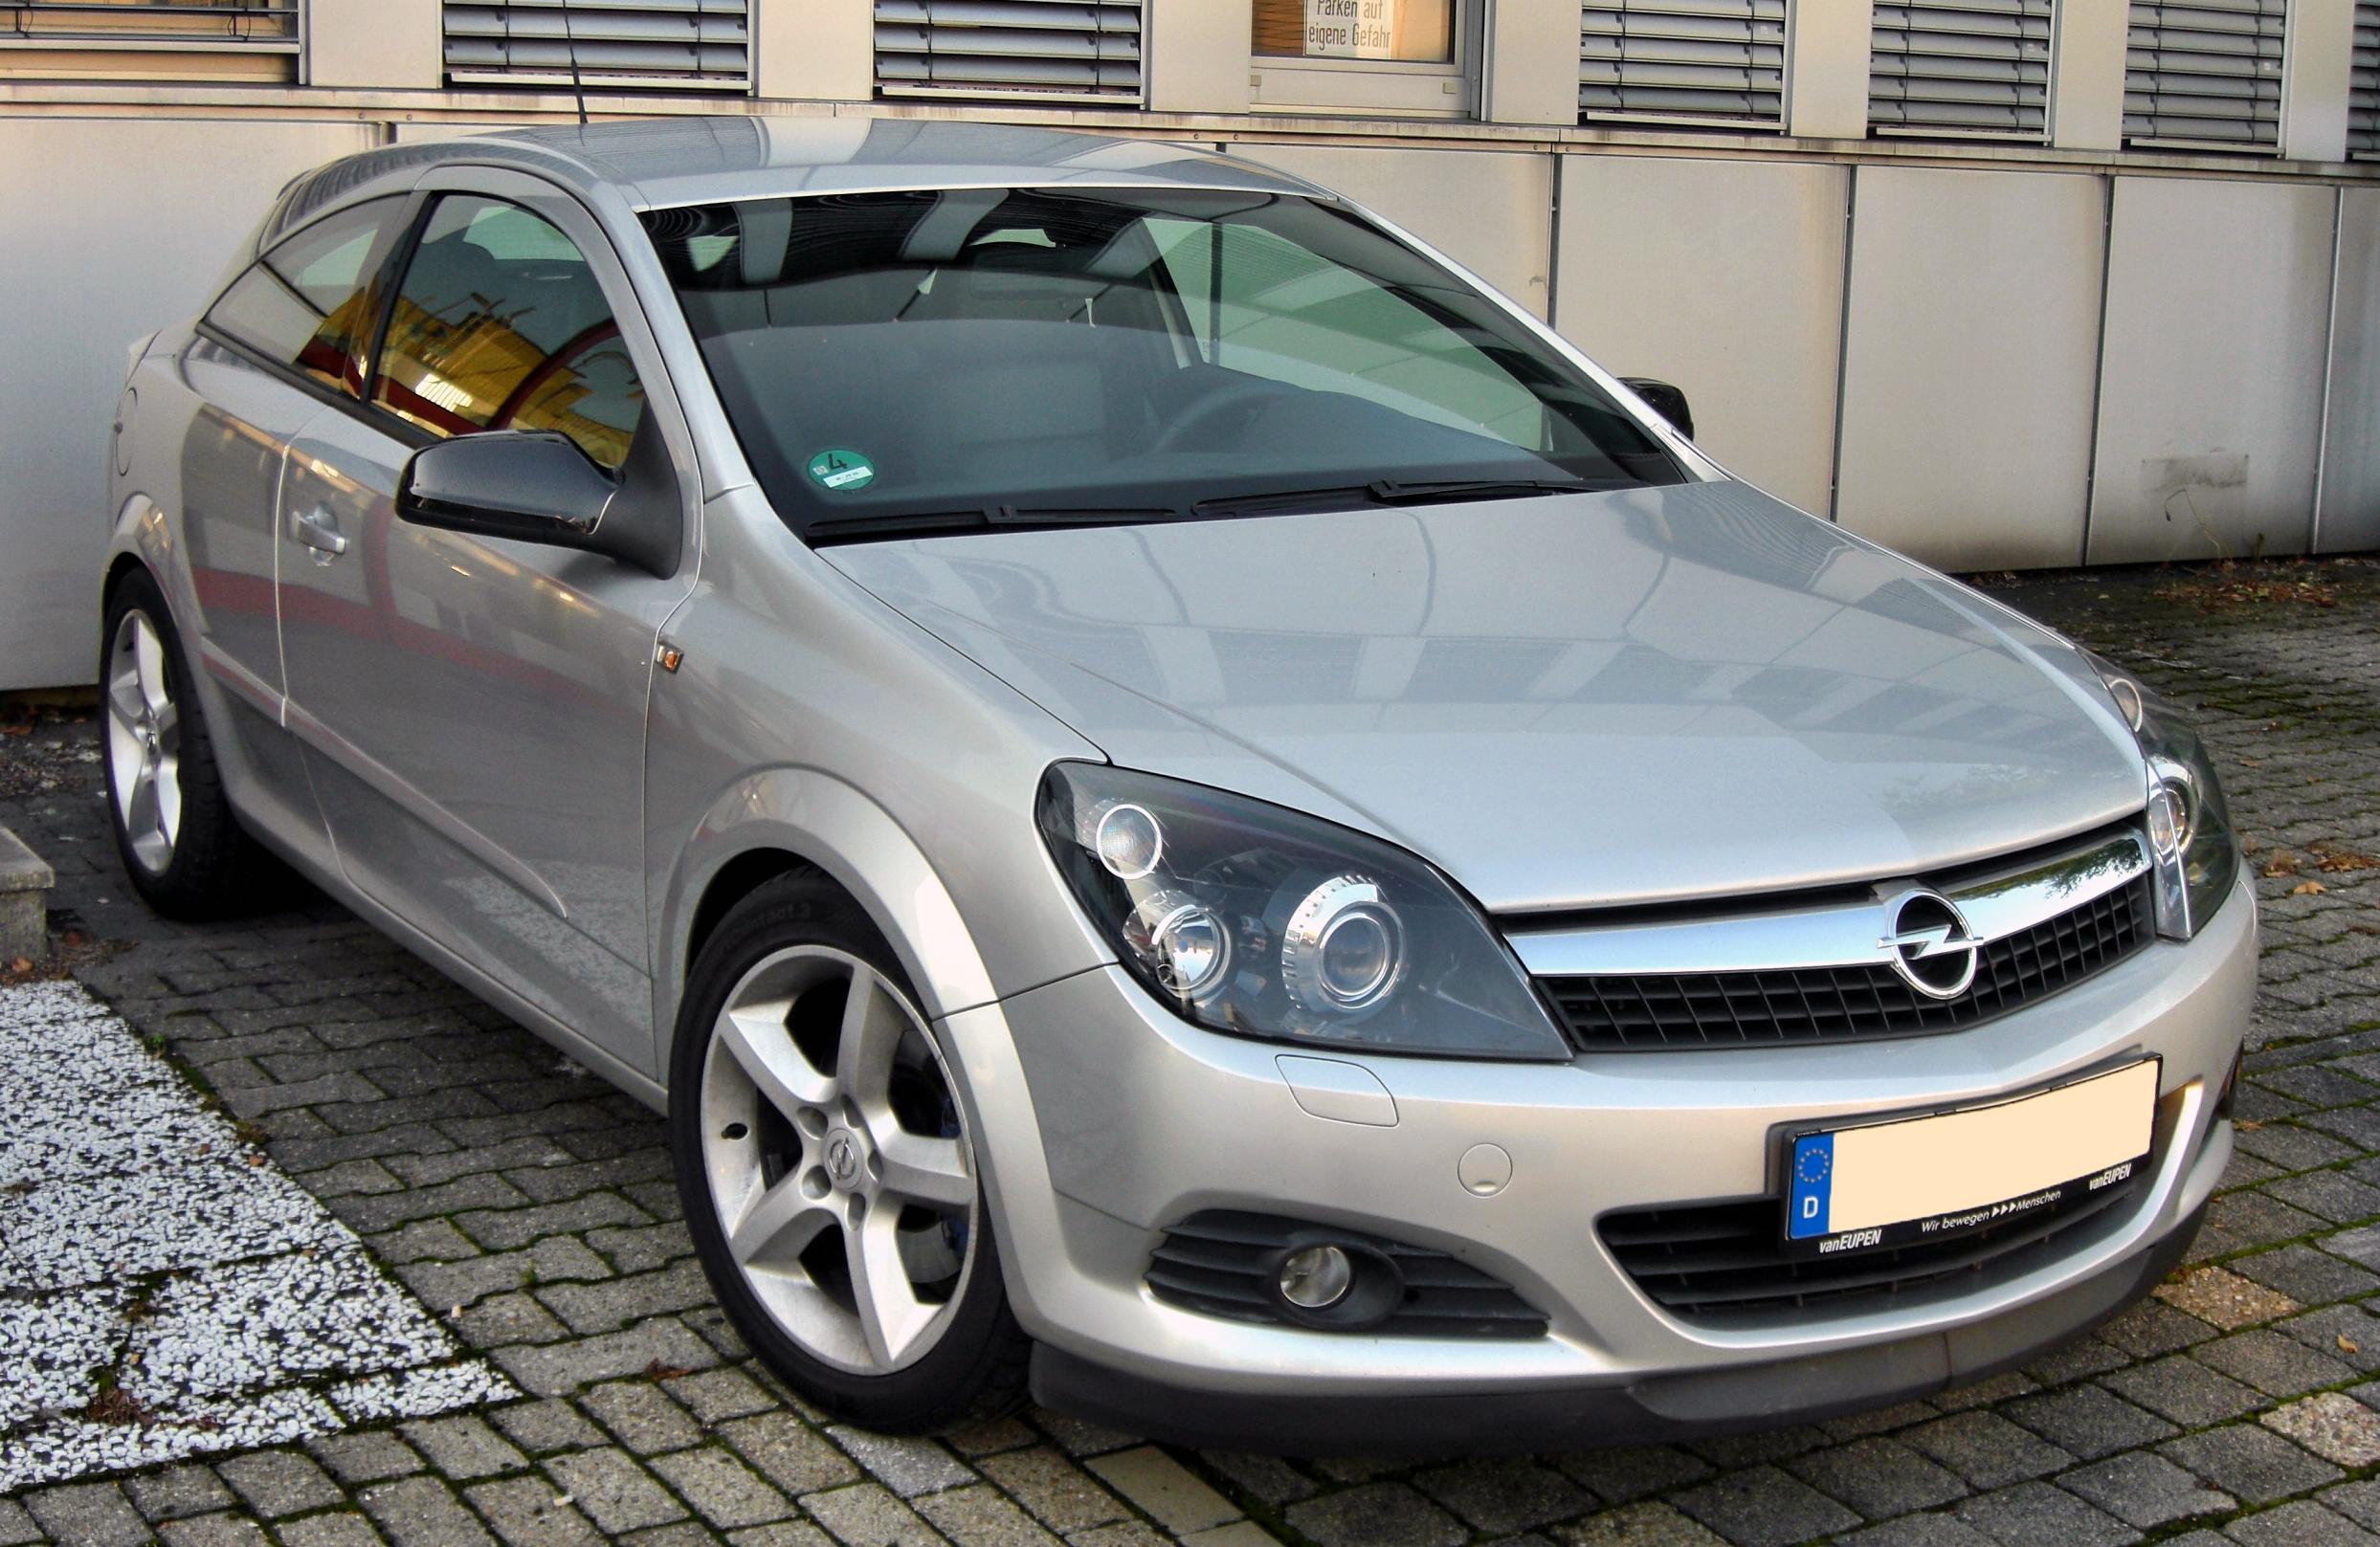 file opel astra h gtc facelift 20090813 front jpg wikimedia commons. Black Bedroom Furniture Sets. Home Design Ideas